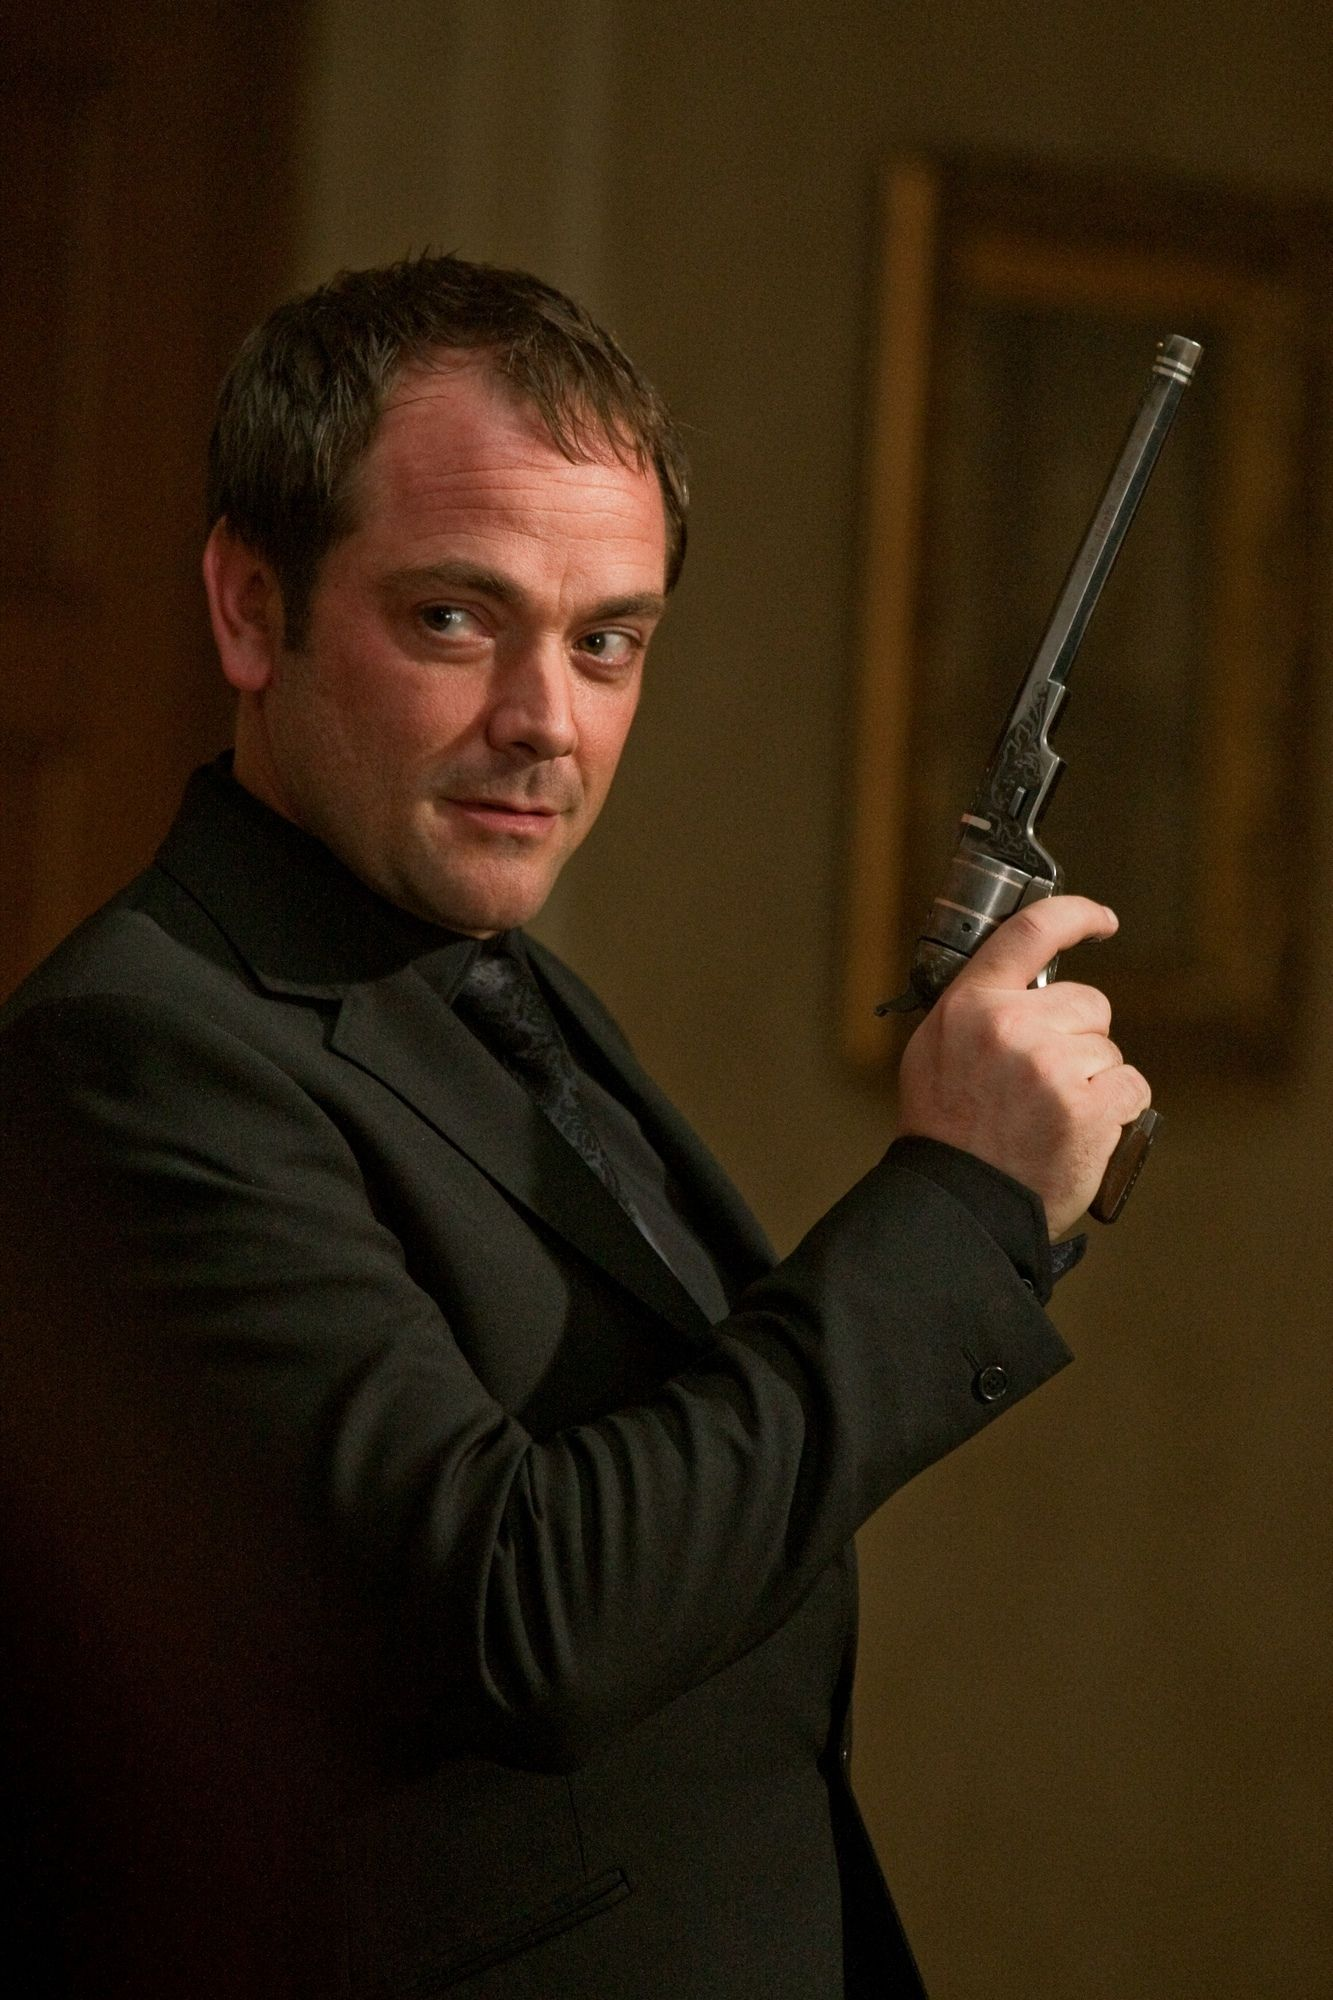 Mark Sheppard (born 1964) nudes (96 foto and video), Pussy, Cleavage, Selfie, lingerie 2020